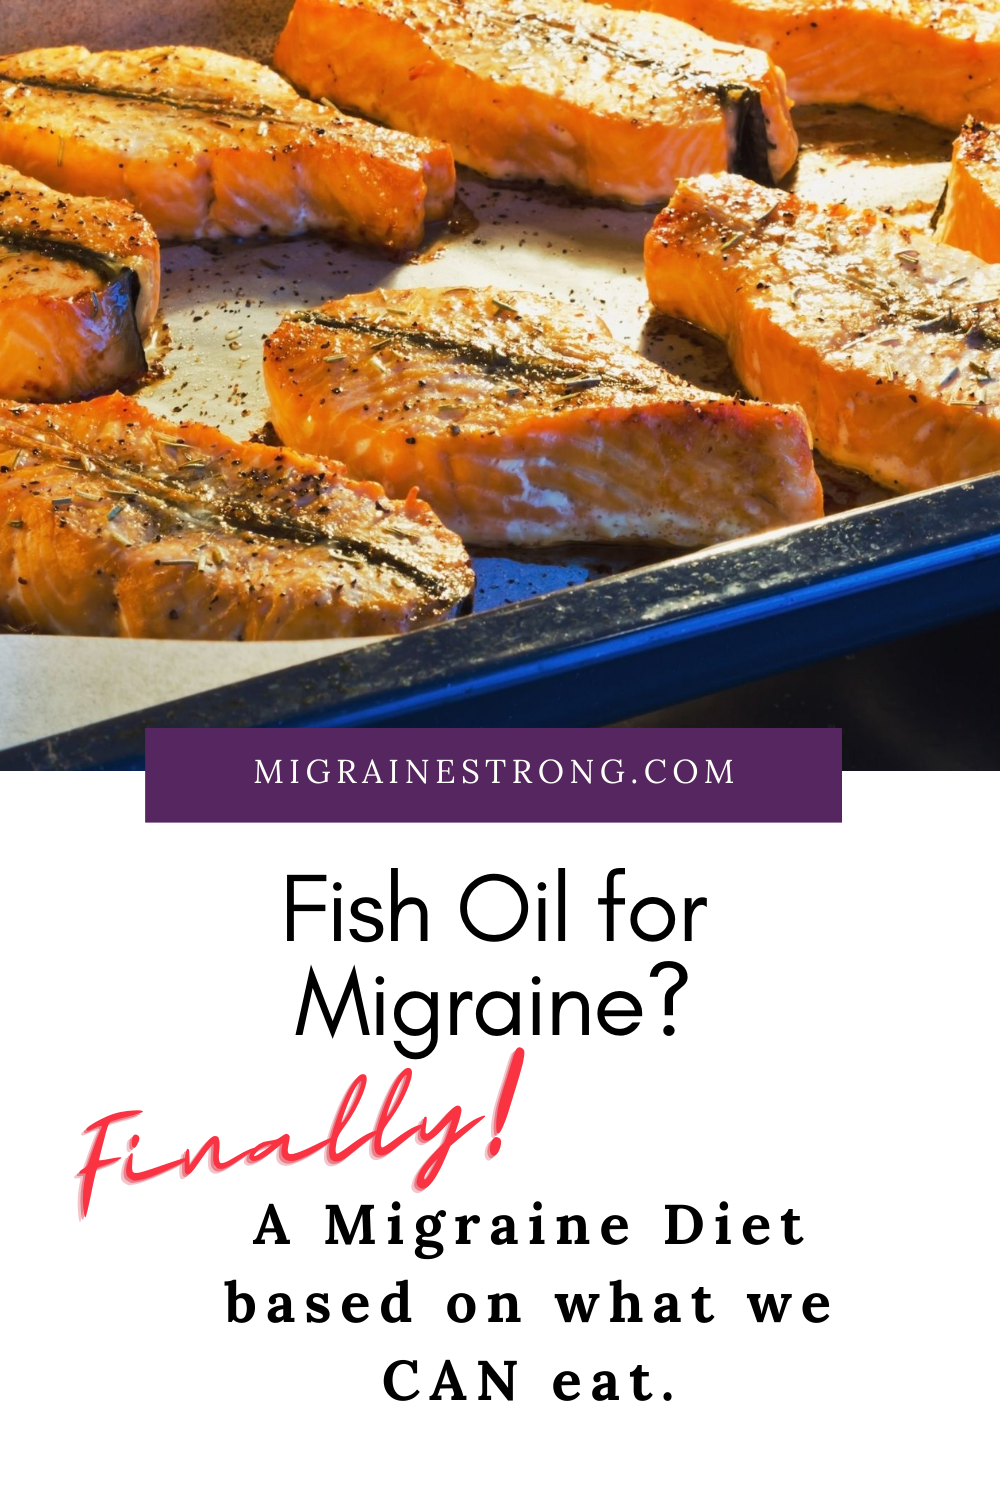 Fish Oil and Migraine-Can it Really Help?